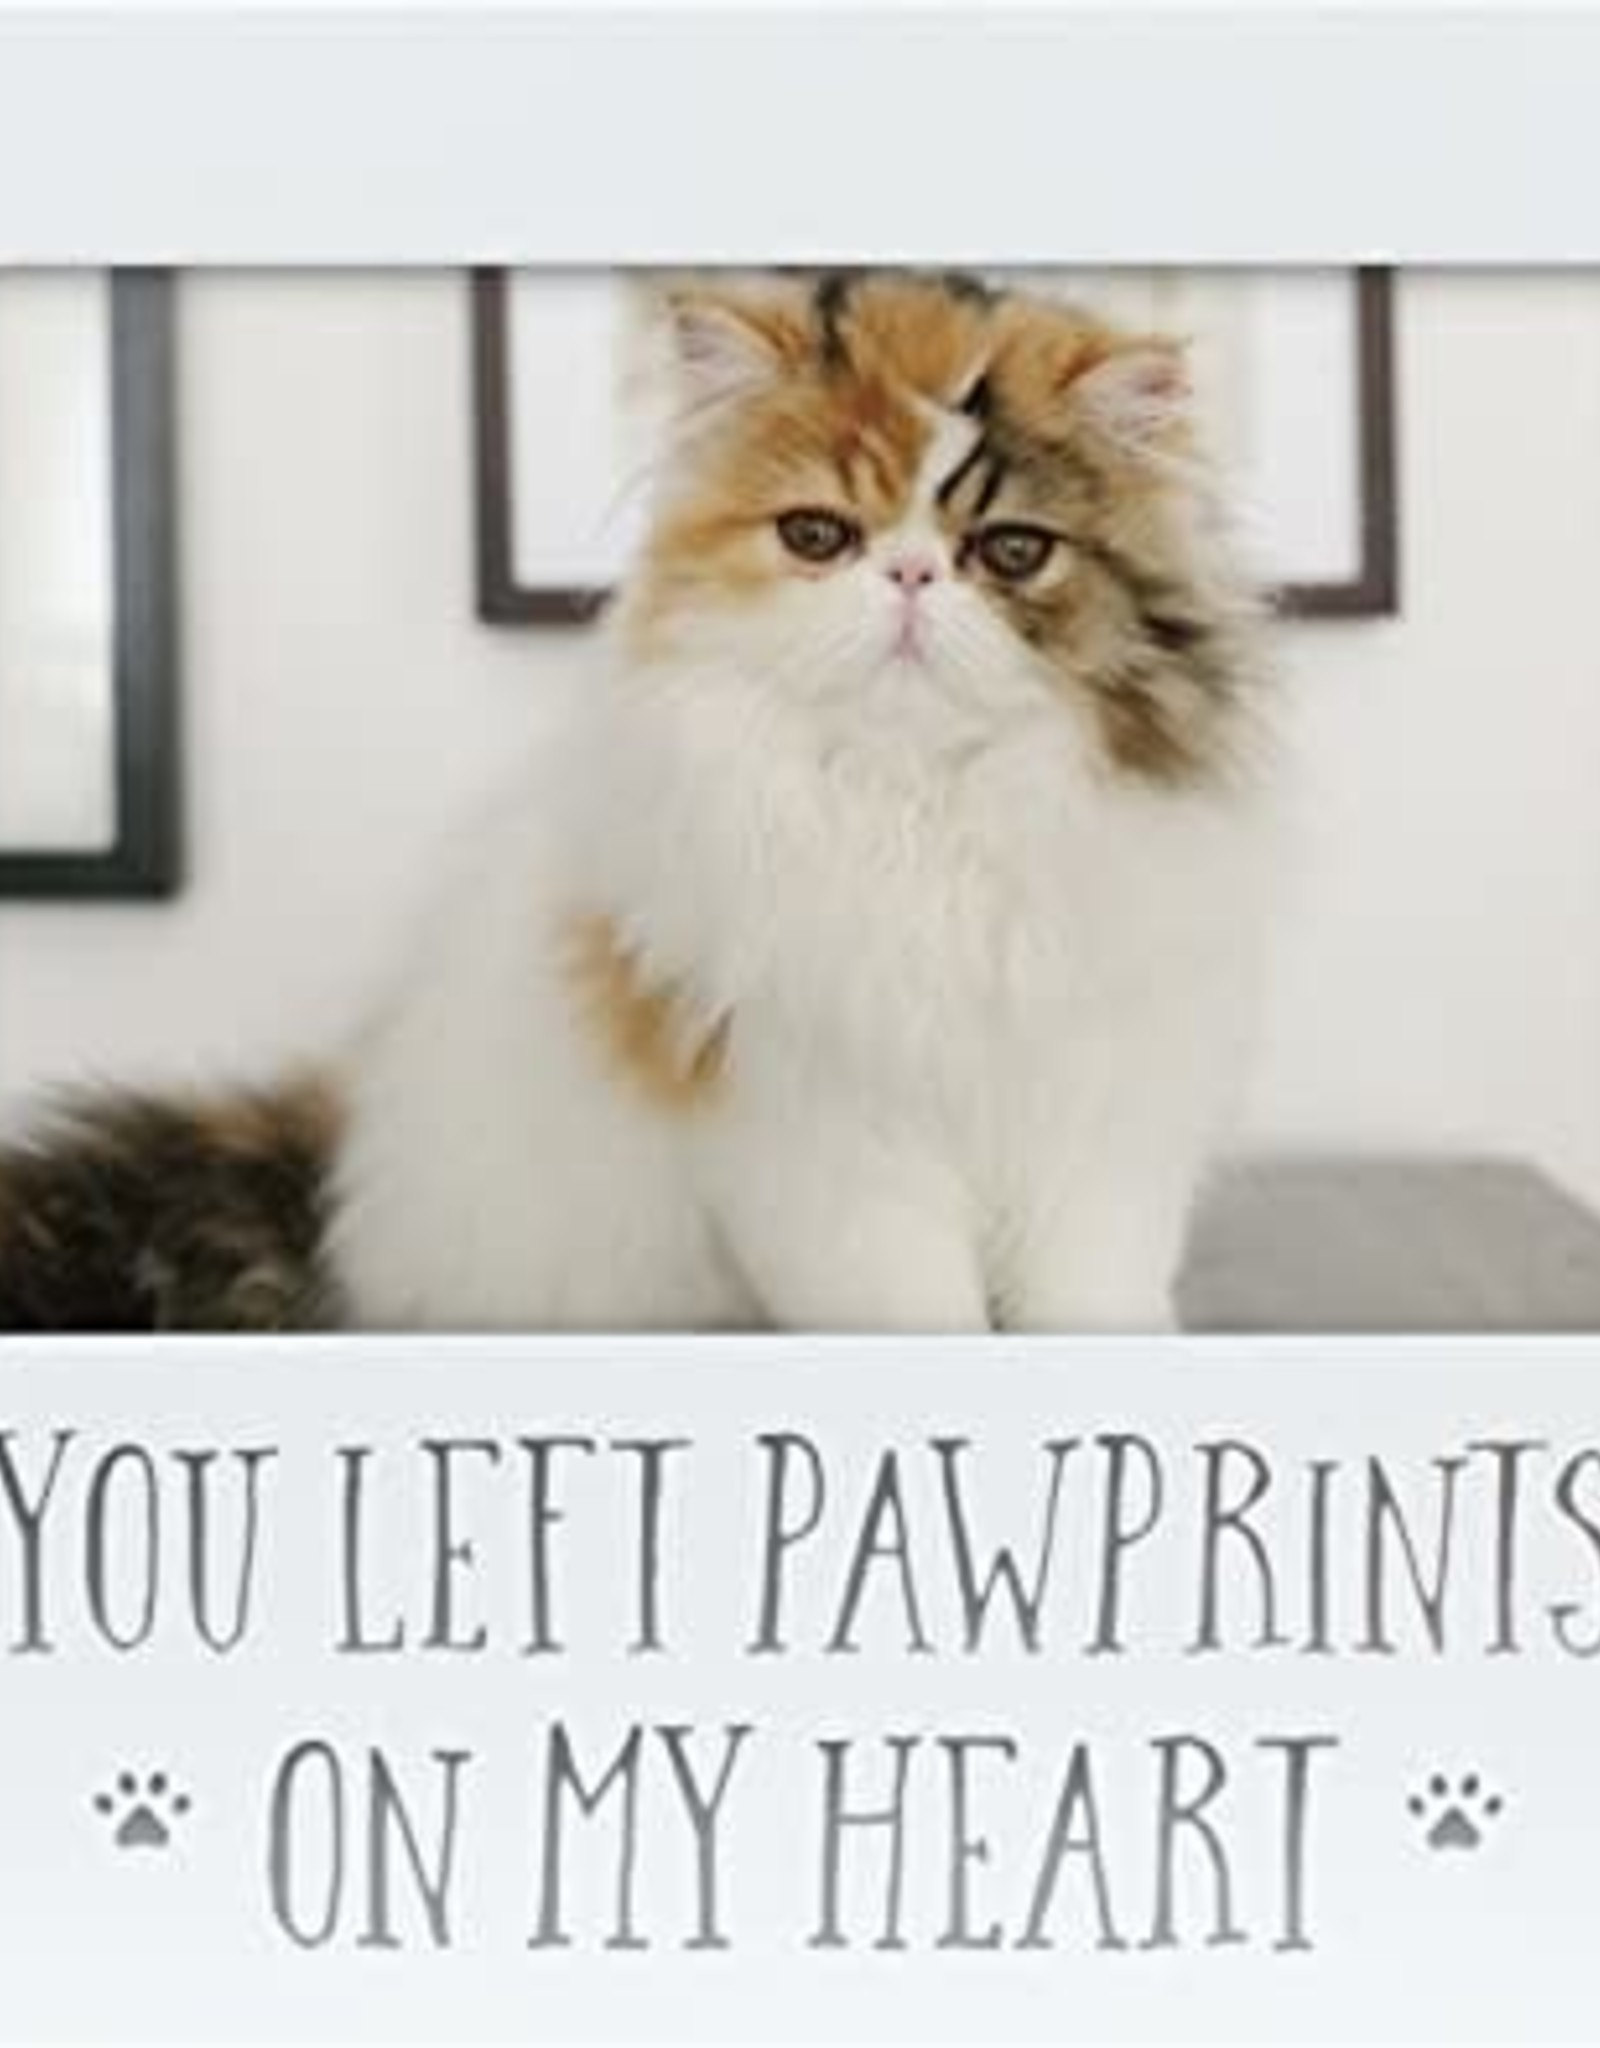 Pearhead You Left Pawprints On My Heart Sentiment Frame